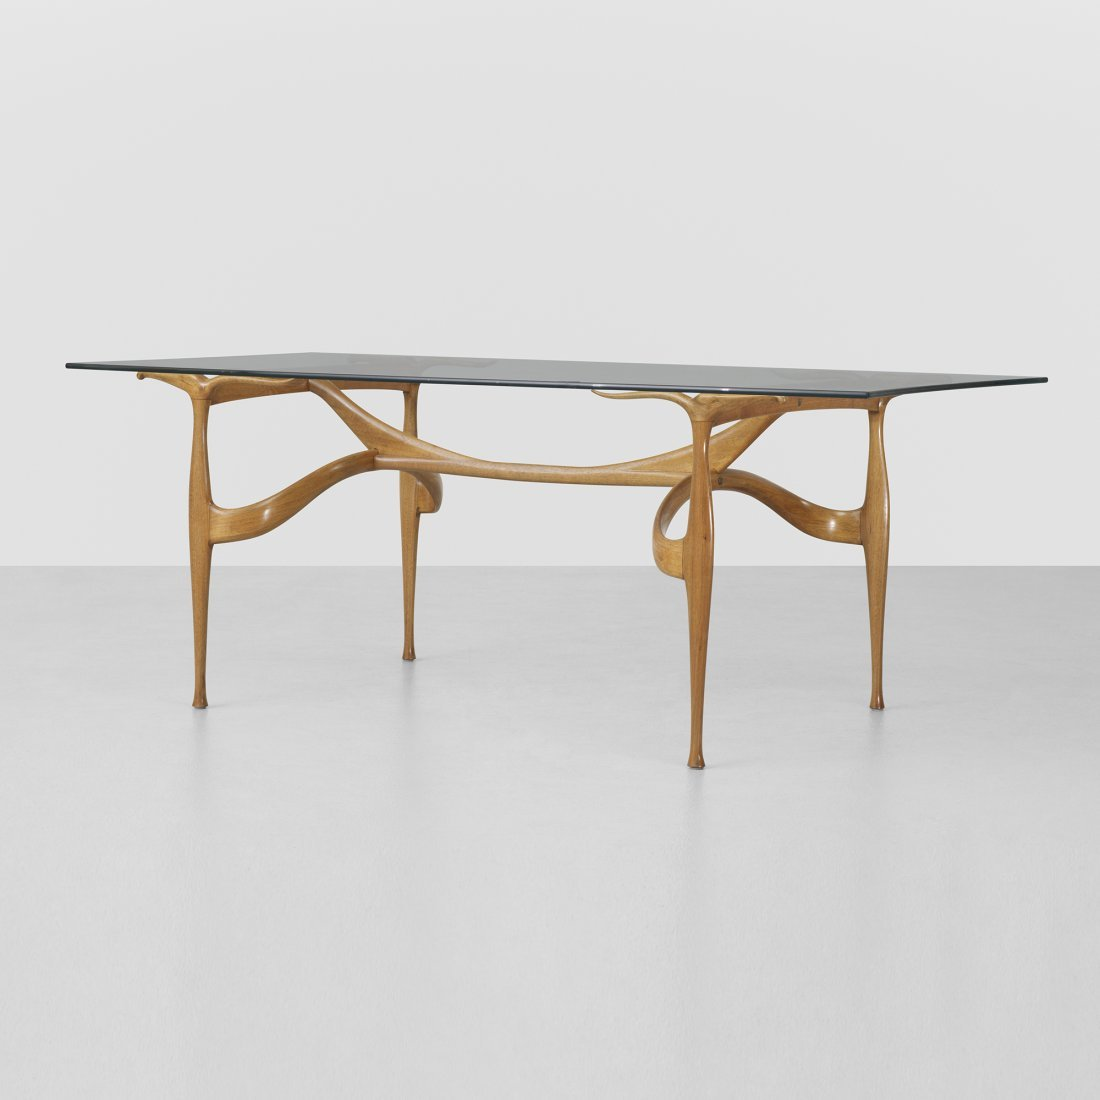 210: Dan Johnson Gazelle dining table